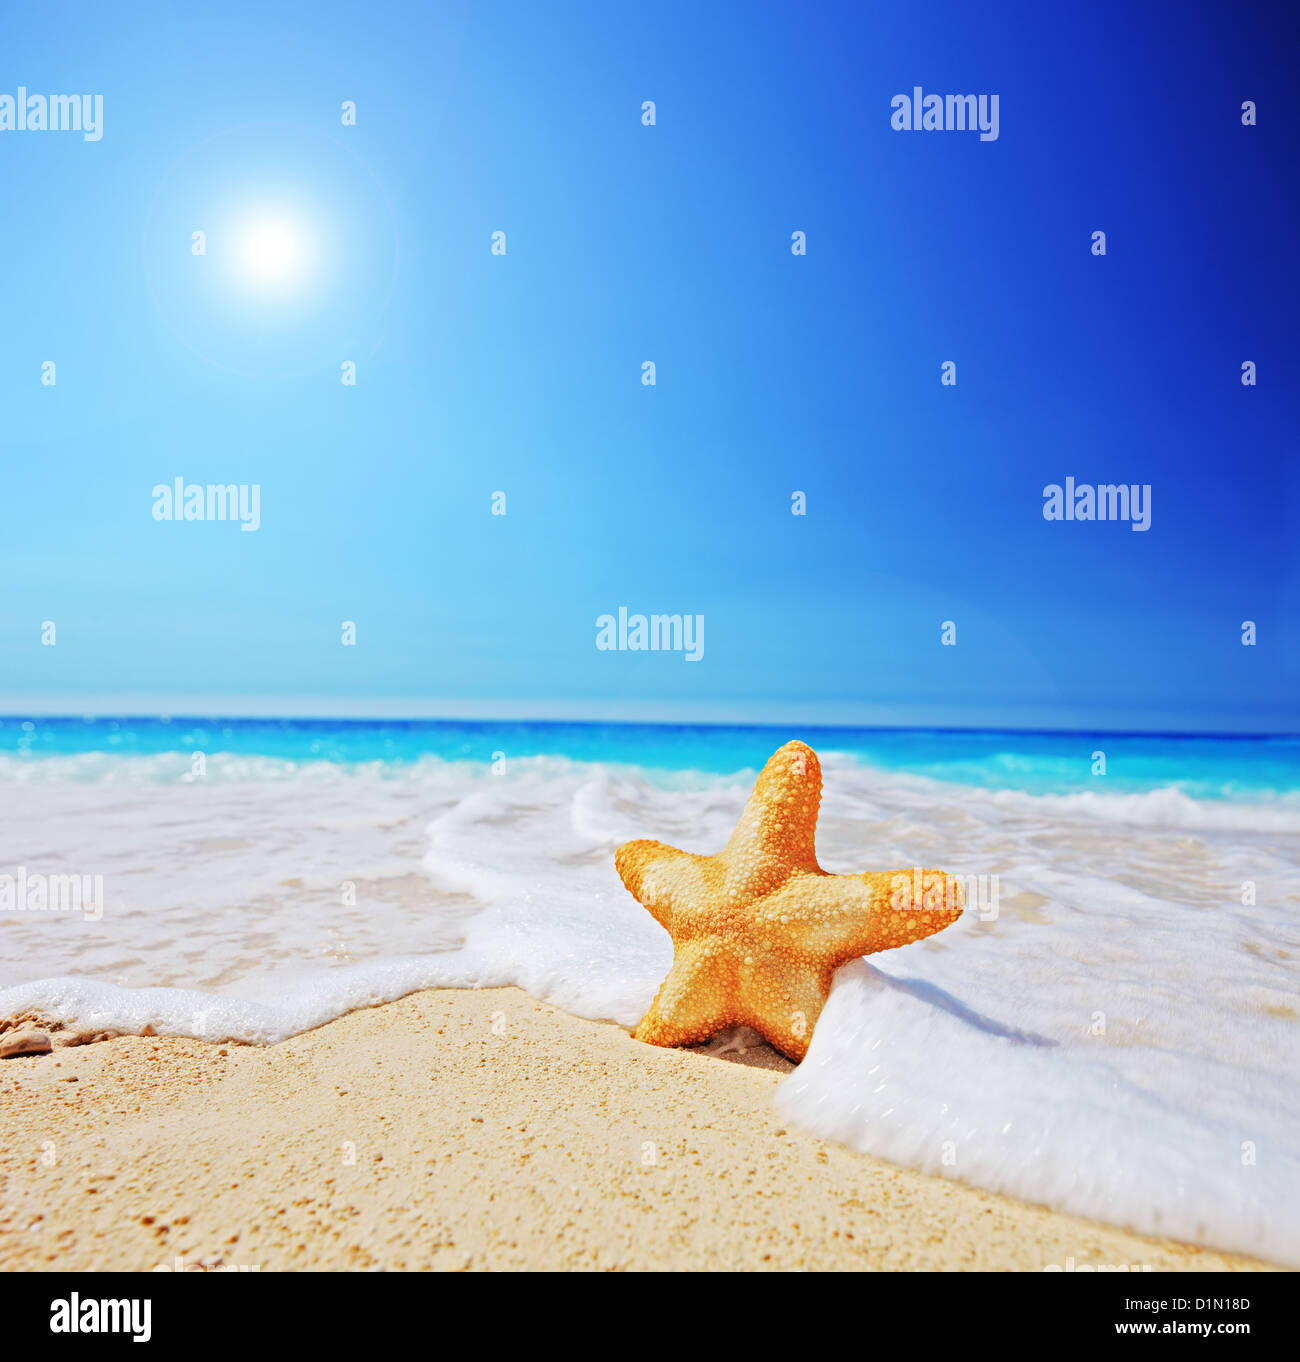 A view of a starfish on a beach with clear sky and wave, shot with a tilt and shift lens Stock Photo